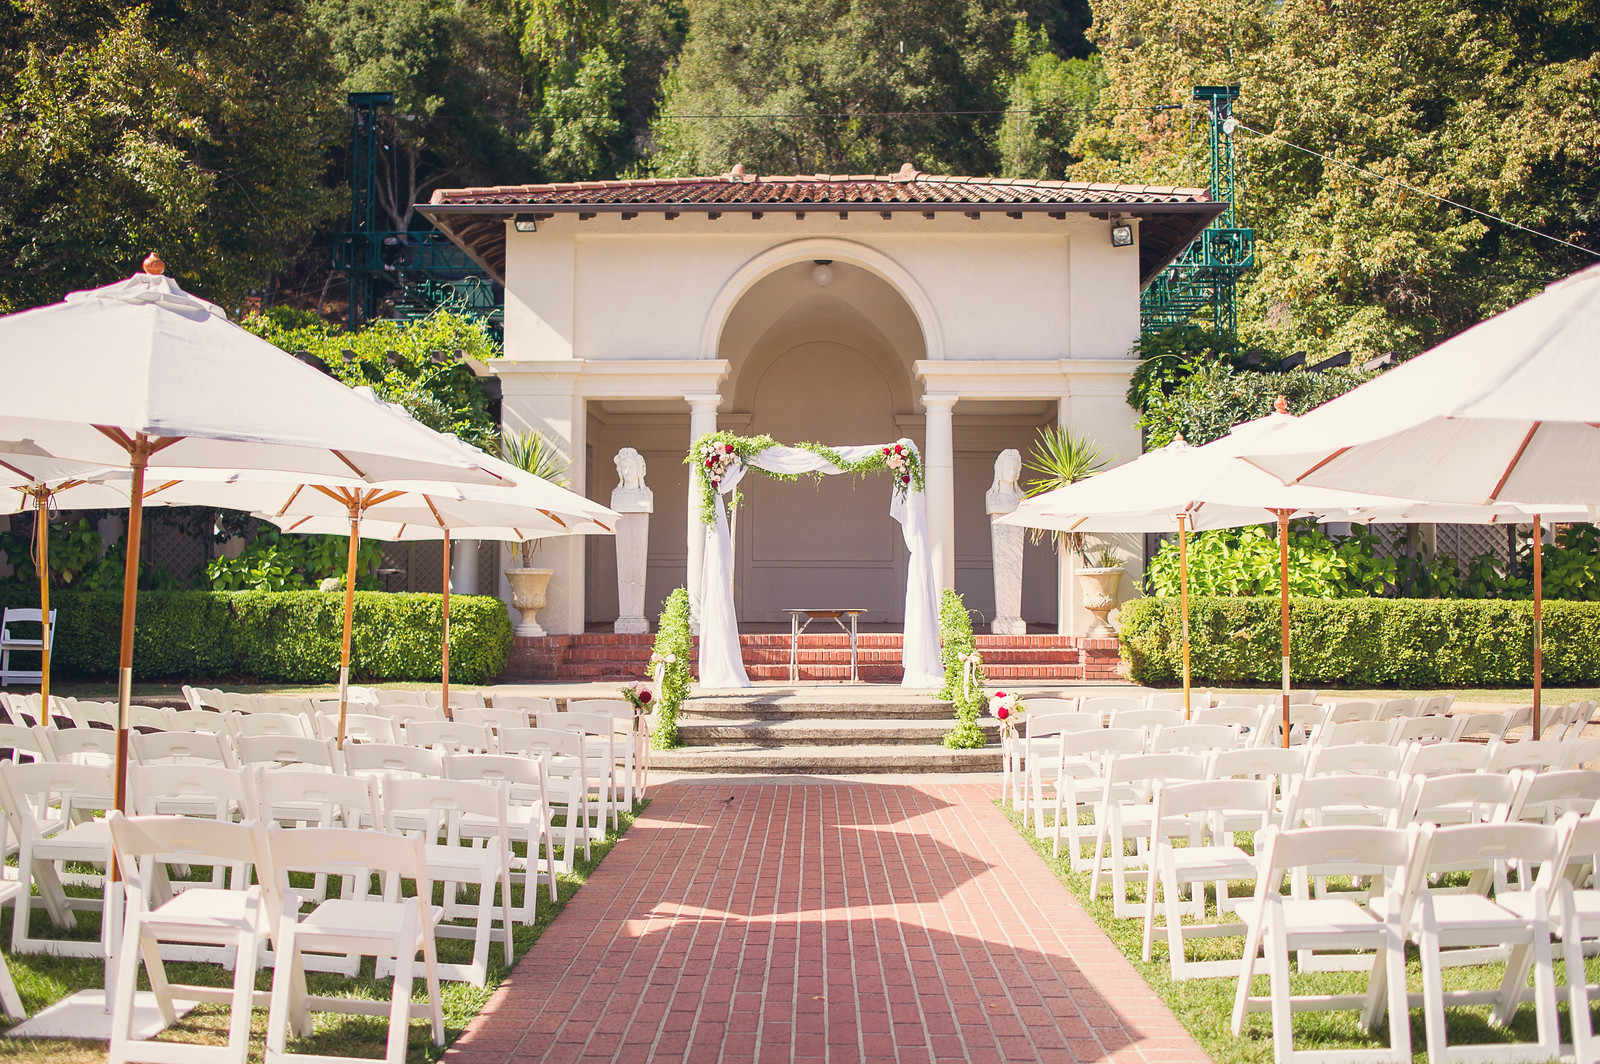 Villa_montalvo_wedding_1025-X3.jpg